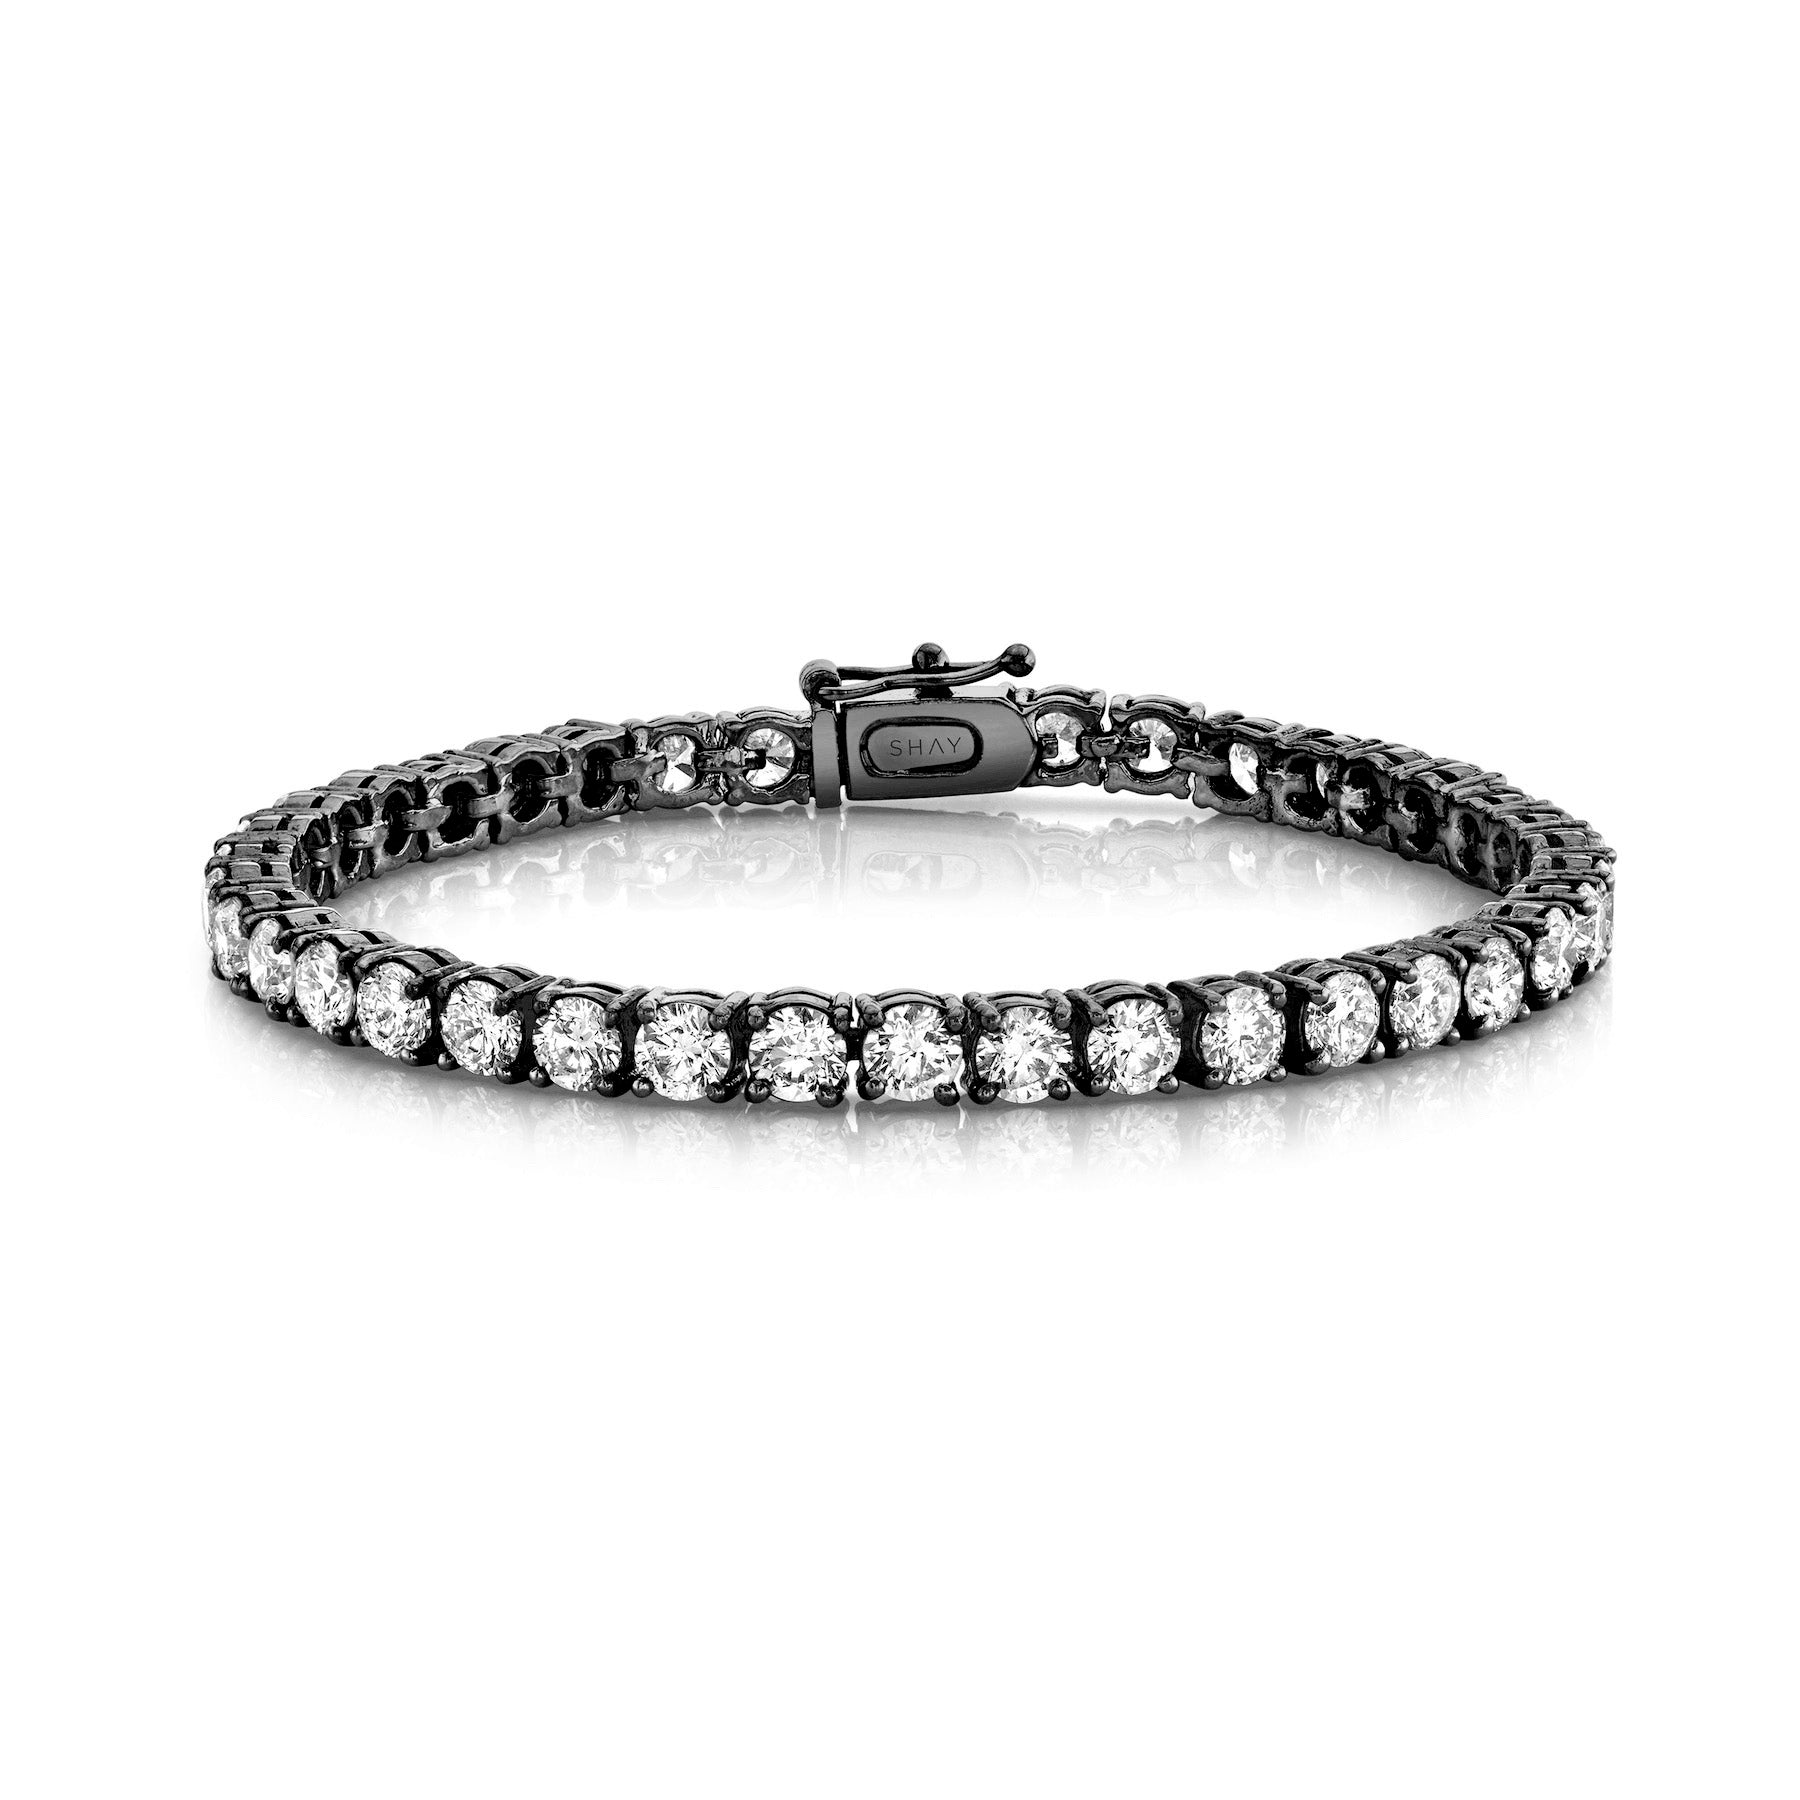 DIAMOND TENNIS BRACELET, 10cts